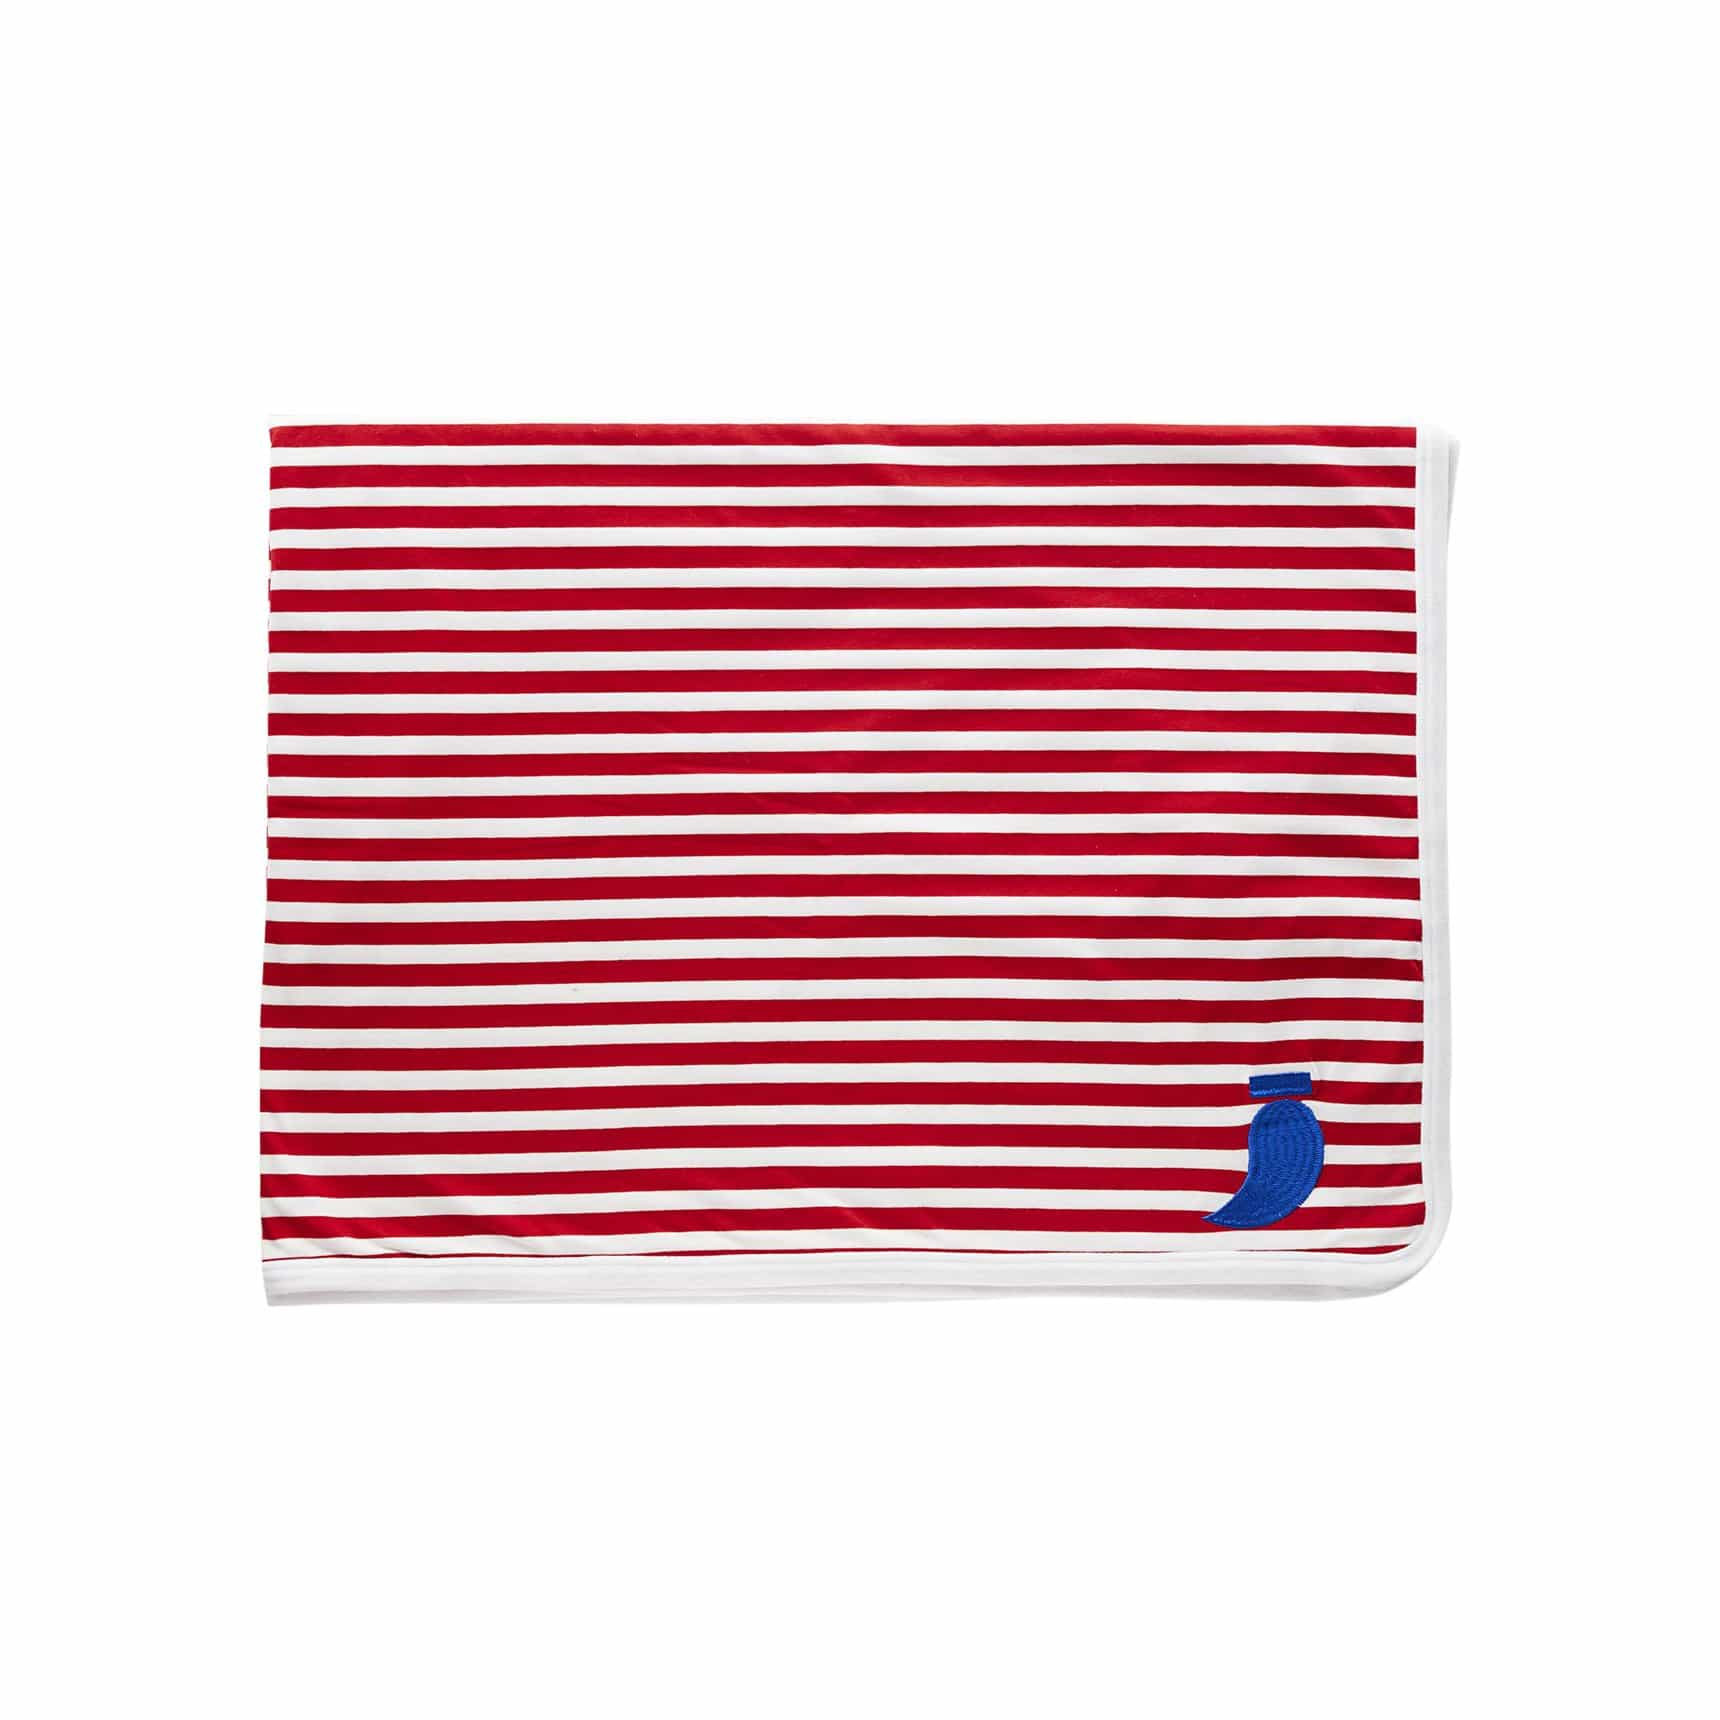 The Painter's Wife Sleep Double Sided Red Striped Blanket